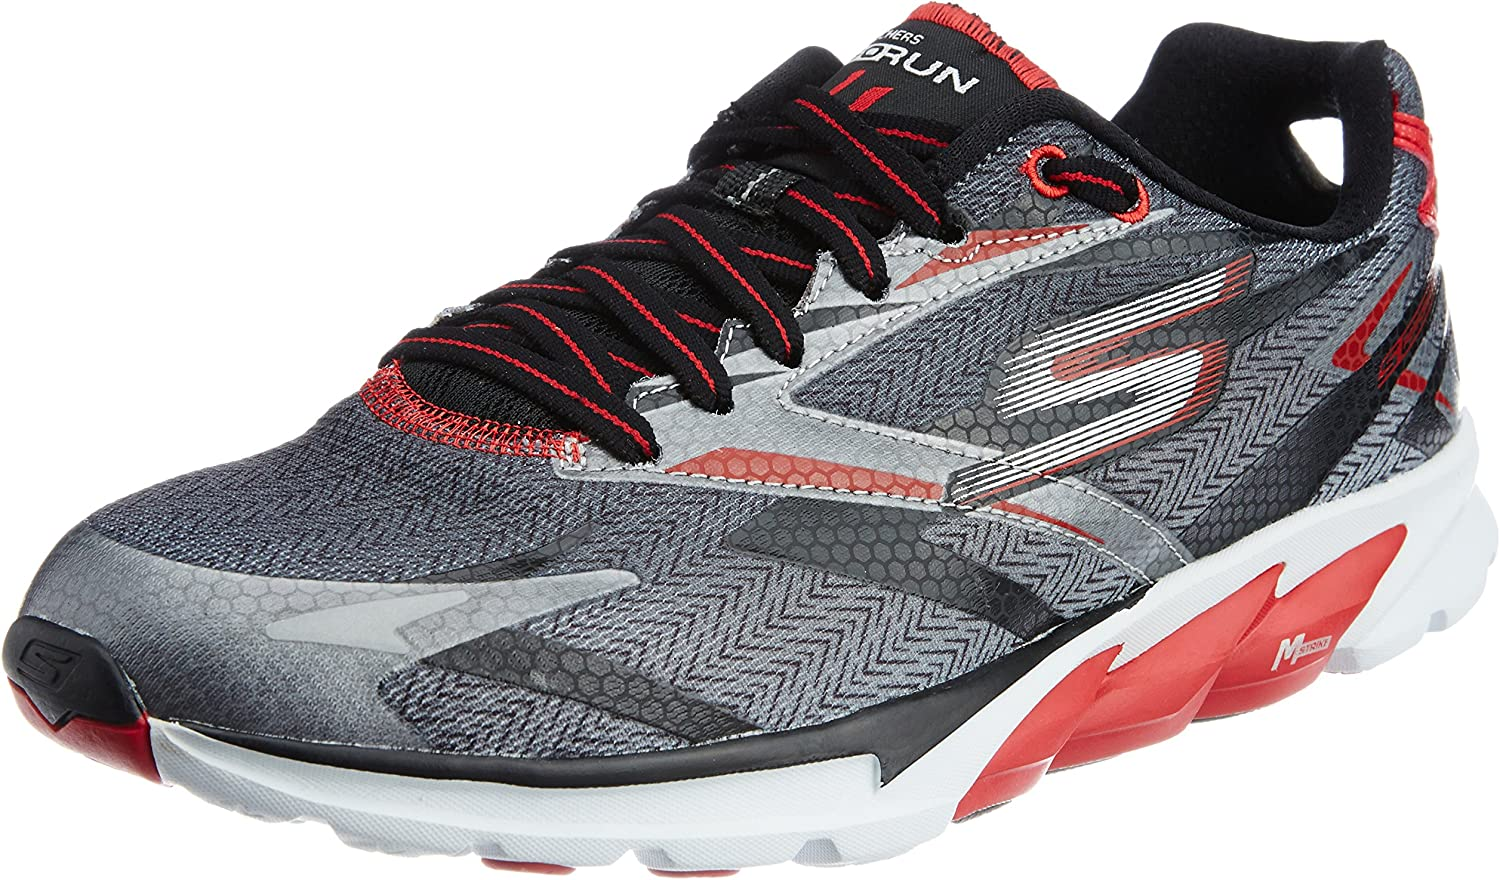 Skechers Go Run 4 - Zapatillas de running para hombre, color negro ...